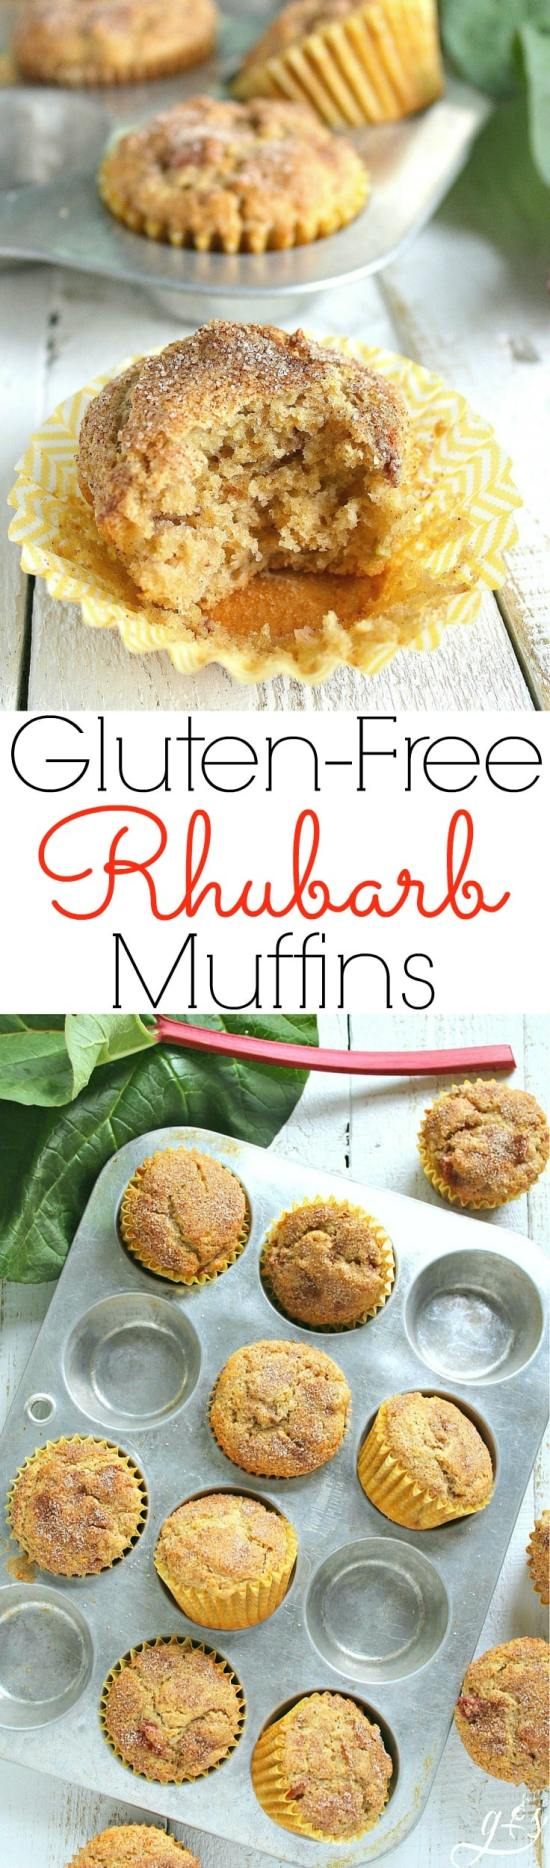 The BEST Gluten-Free Sour Cream Rhubarb Muffins | This easy and healthy breakfast or brunch recipe uses gluten-free flour, but don't let that scare you off. They can be made with whole wheat pastry flour and still retain their light and soft texture. The batter contains coconut oil and applesauce along with other real food ingredients and is topped with the perfect mixture of cinnamon-sugar. These also freeze well!